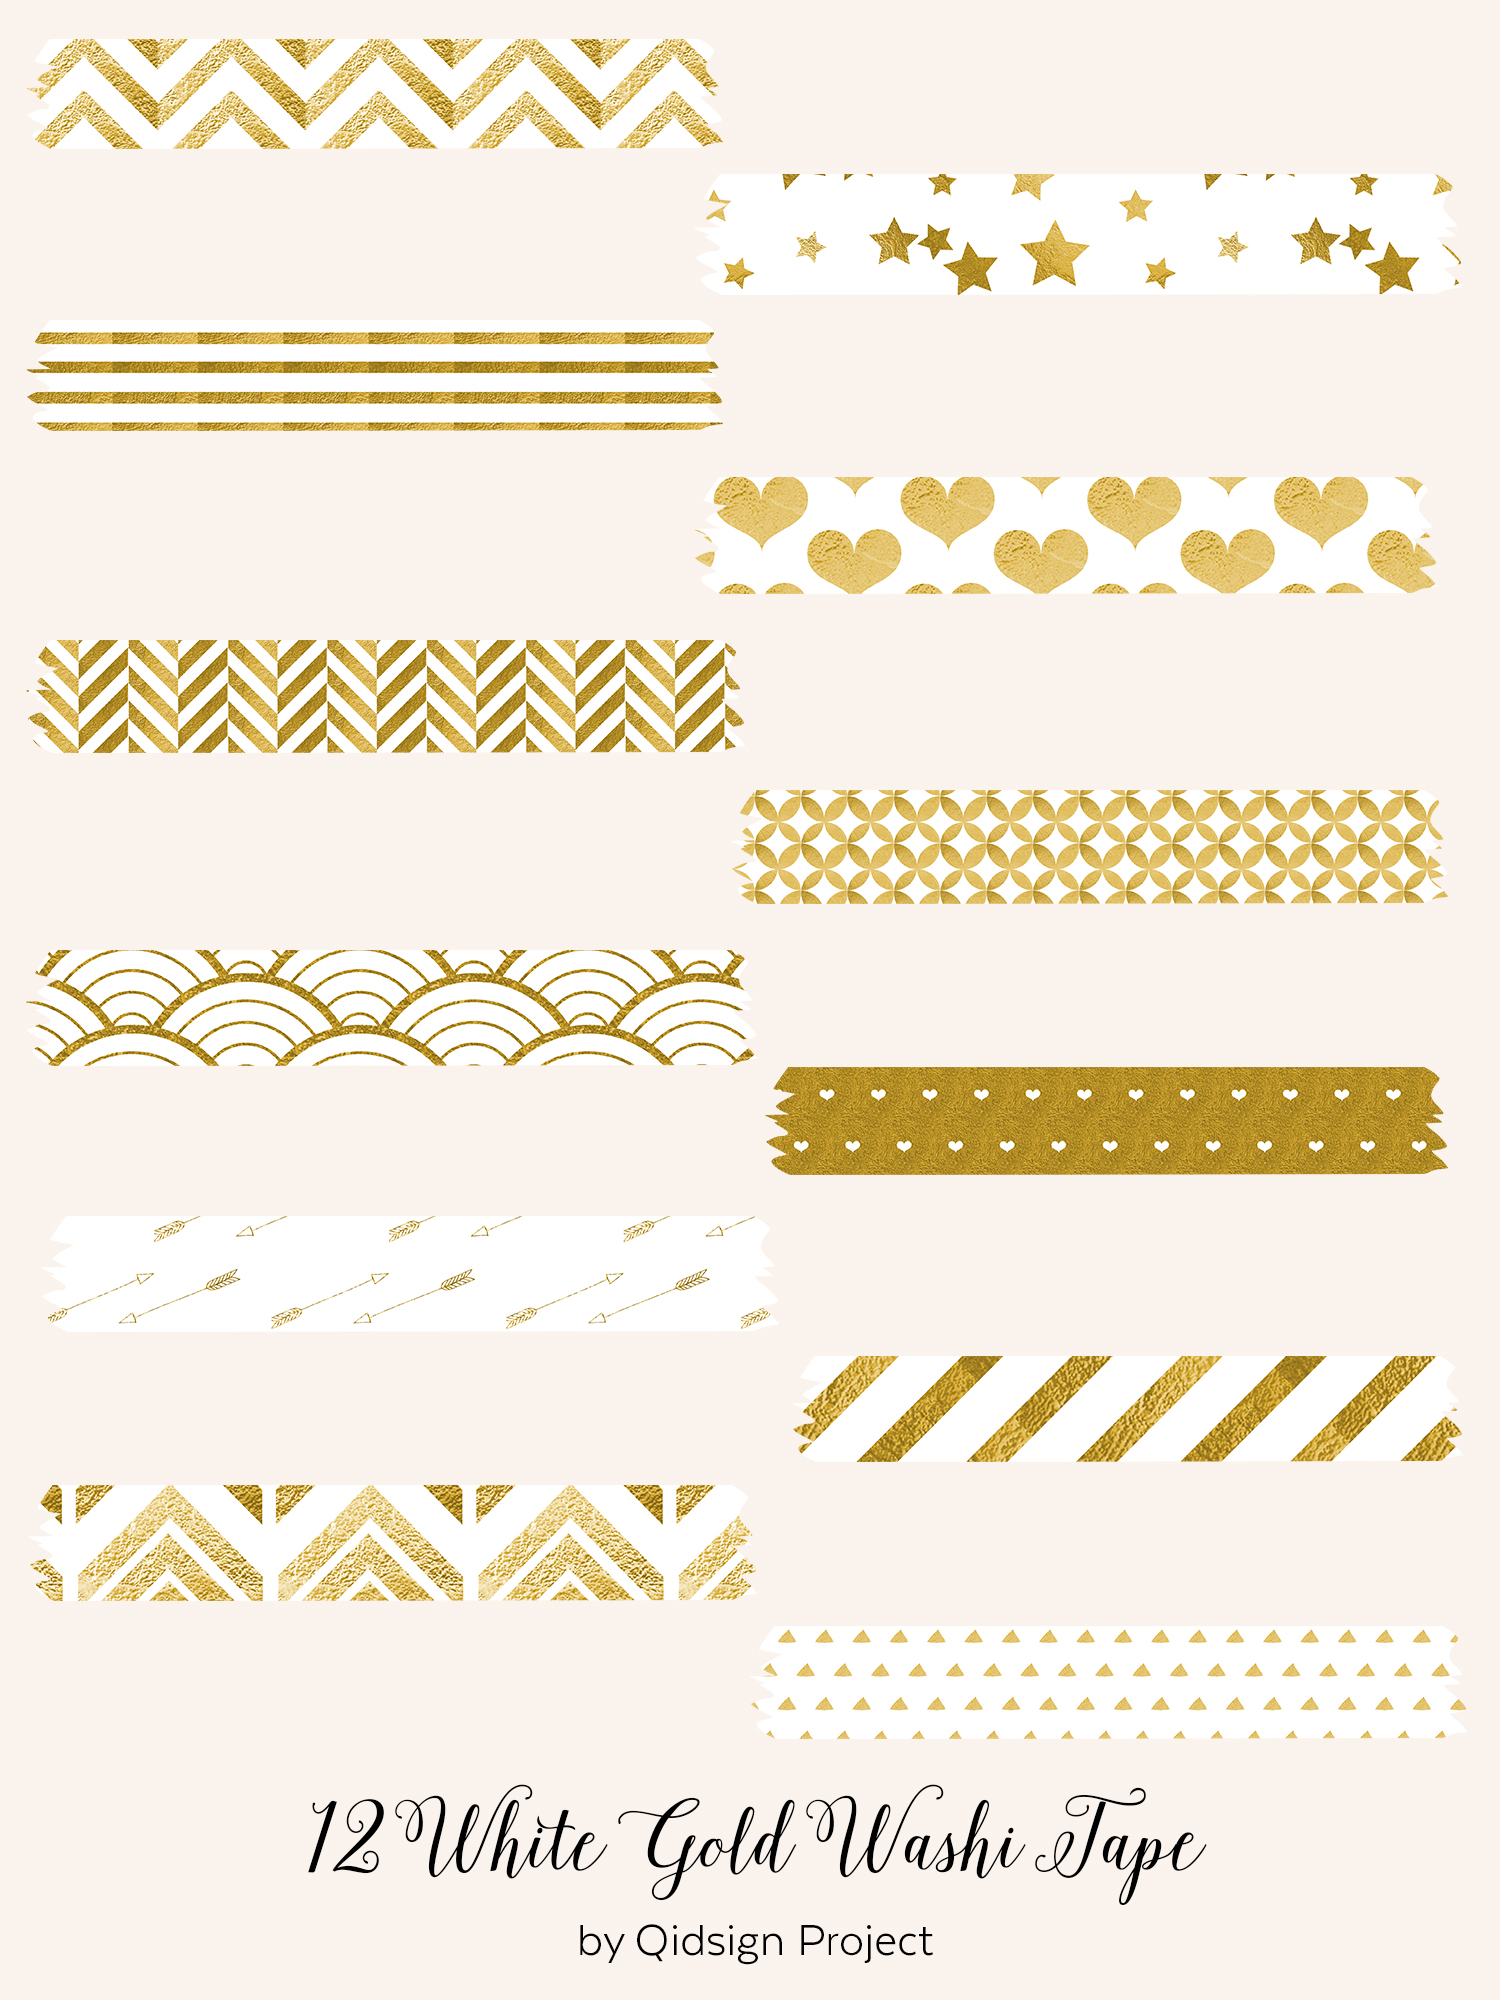 12 White Gold Washi Tape .PNG example image 2